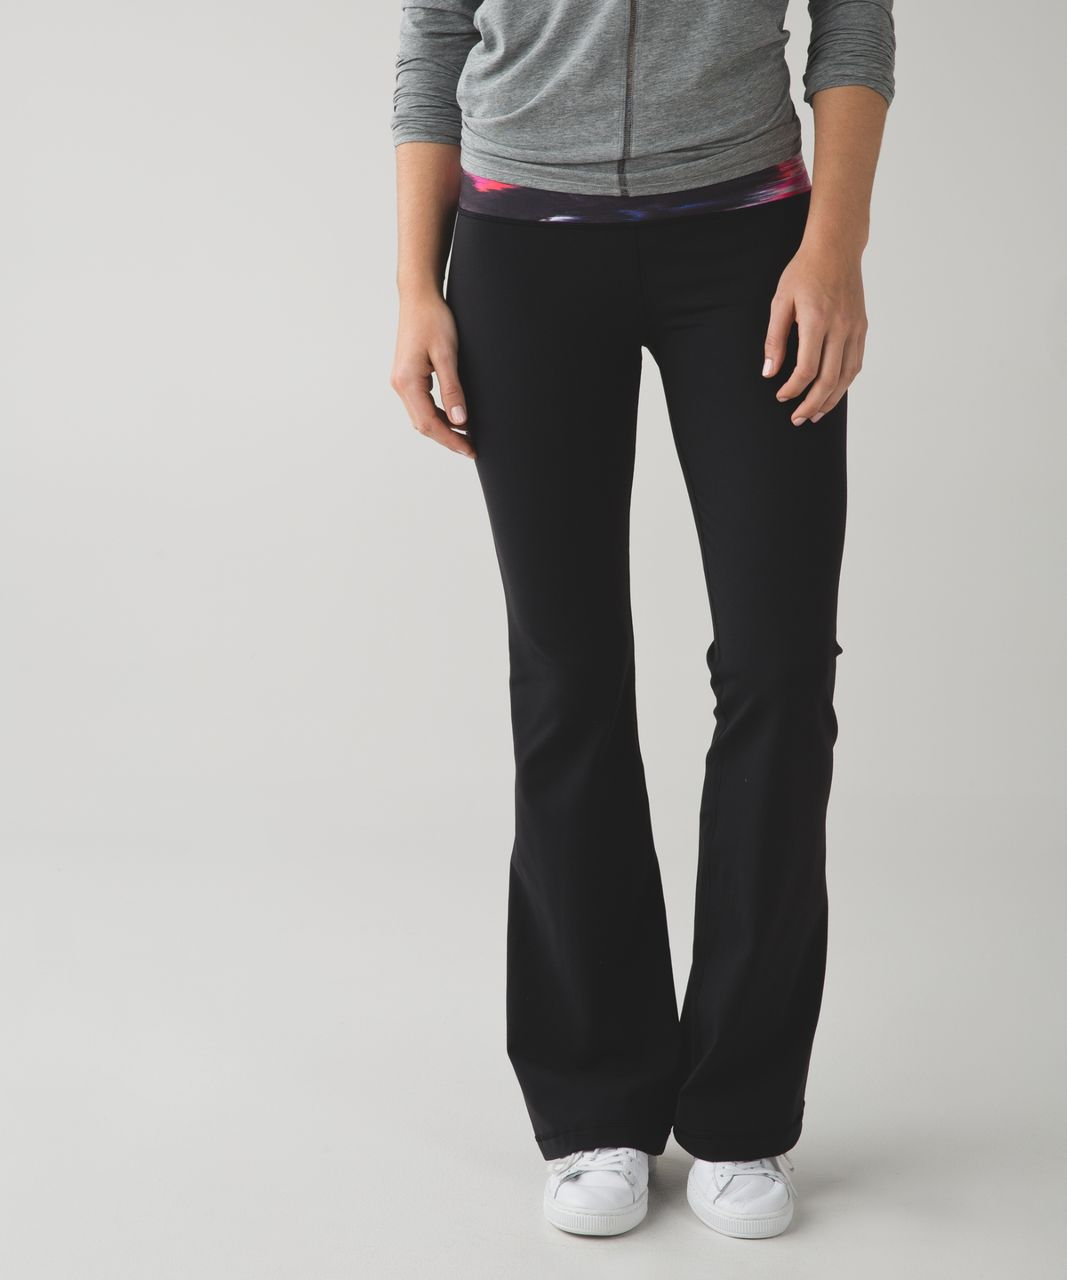 Lululemon Groove Pant III (Regular) *Full-On Luon - Black / Pigment Wind White Multi